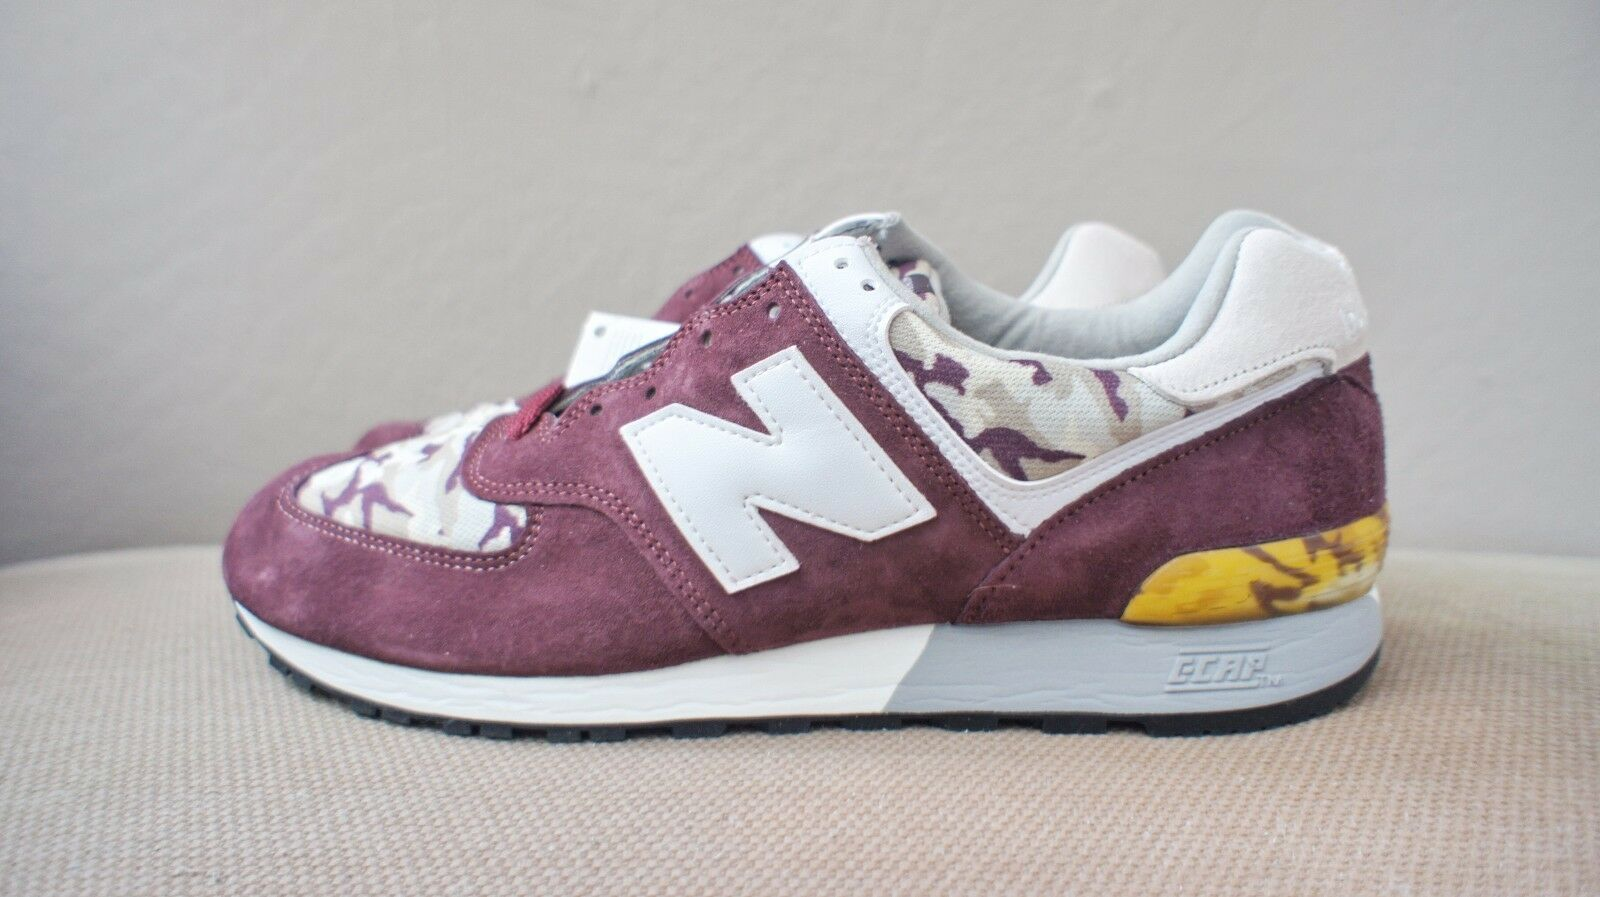 New DS New Balance NB US576CM4 576 Camo Burgundy Made in USA Uomo sz 11.5 or 12